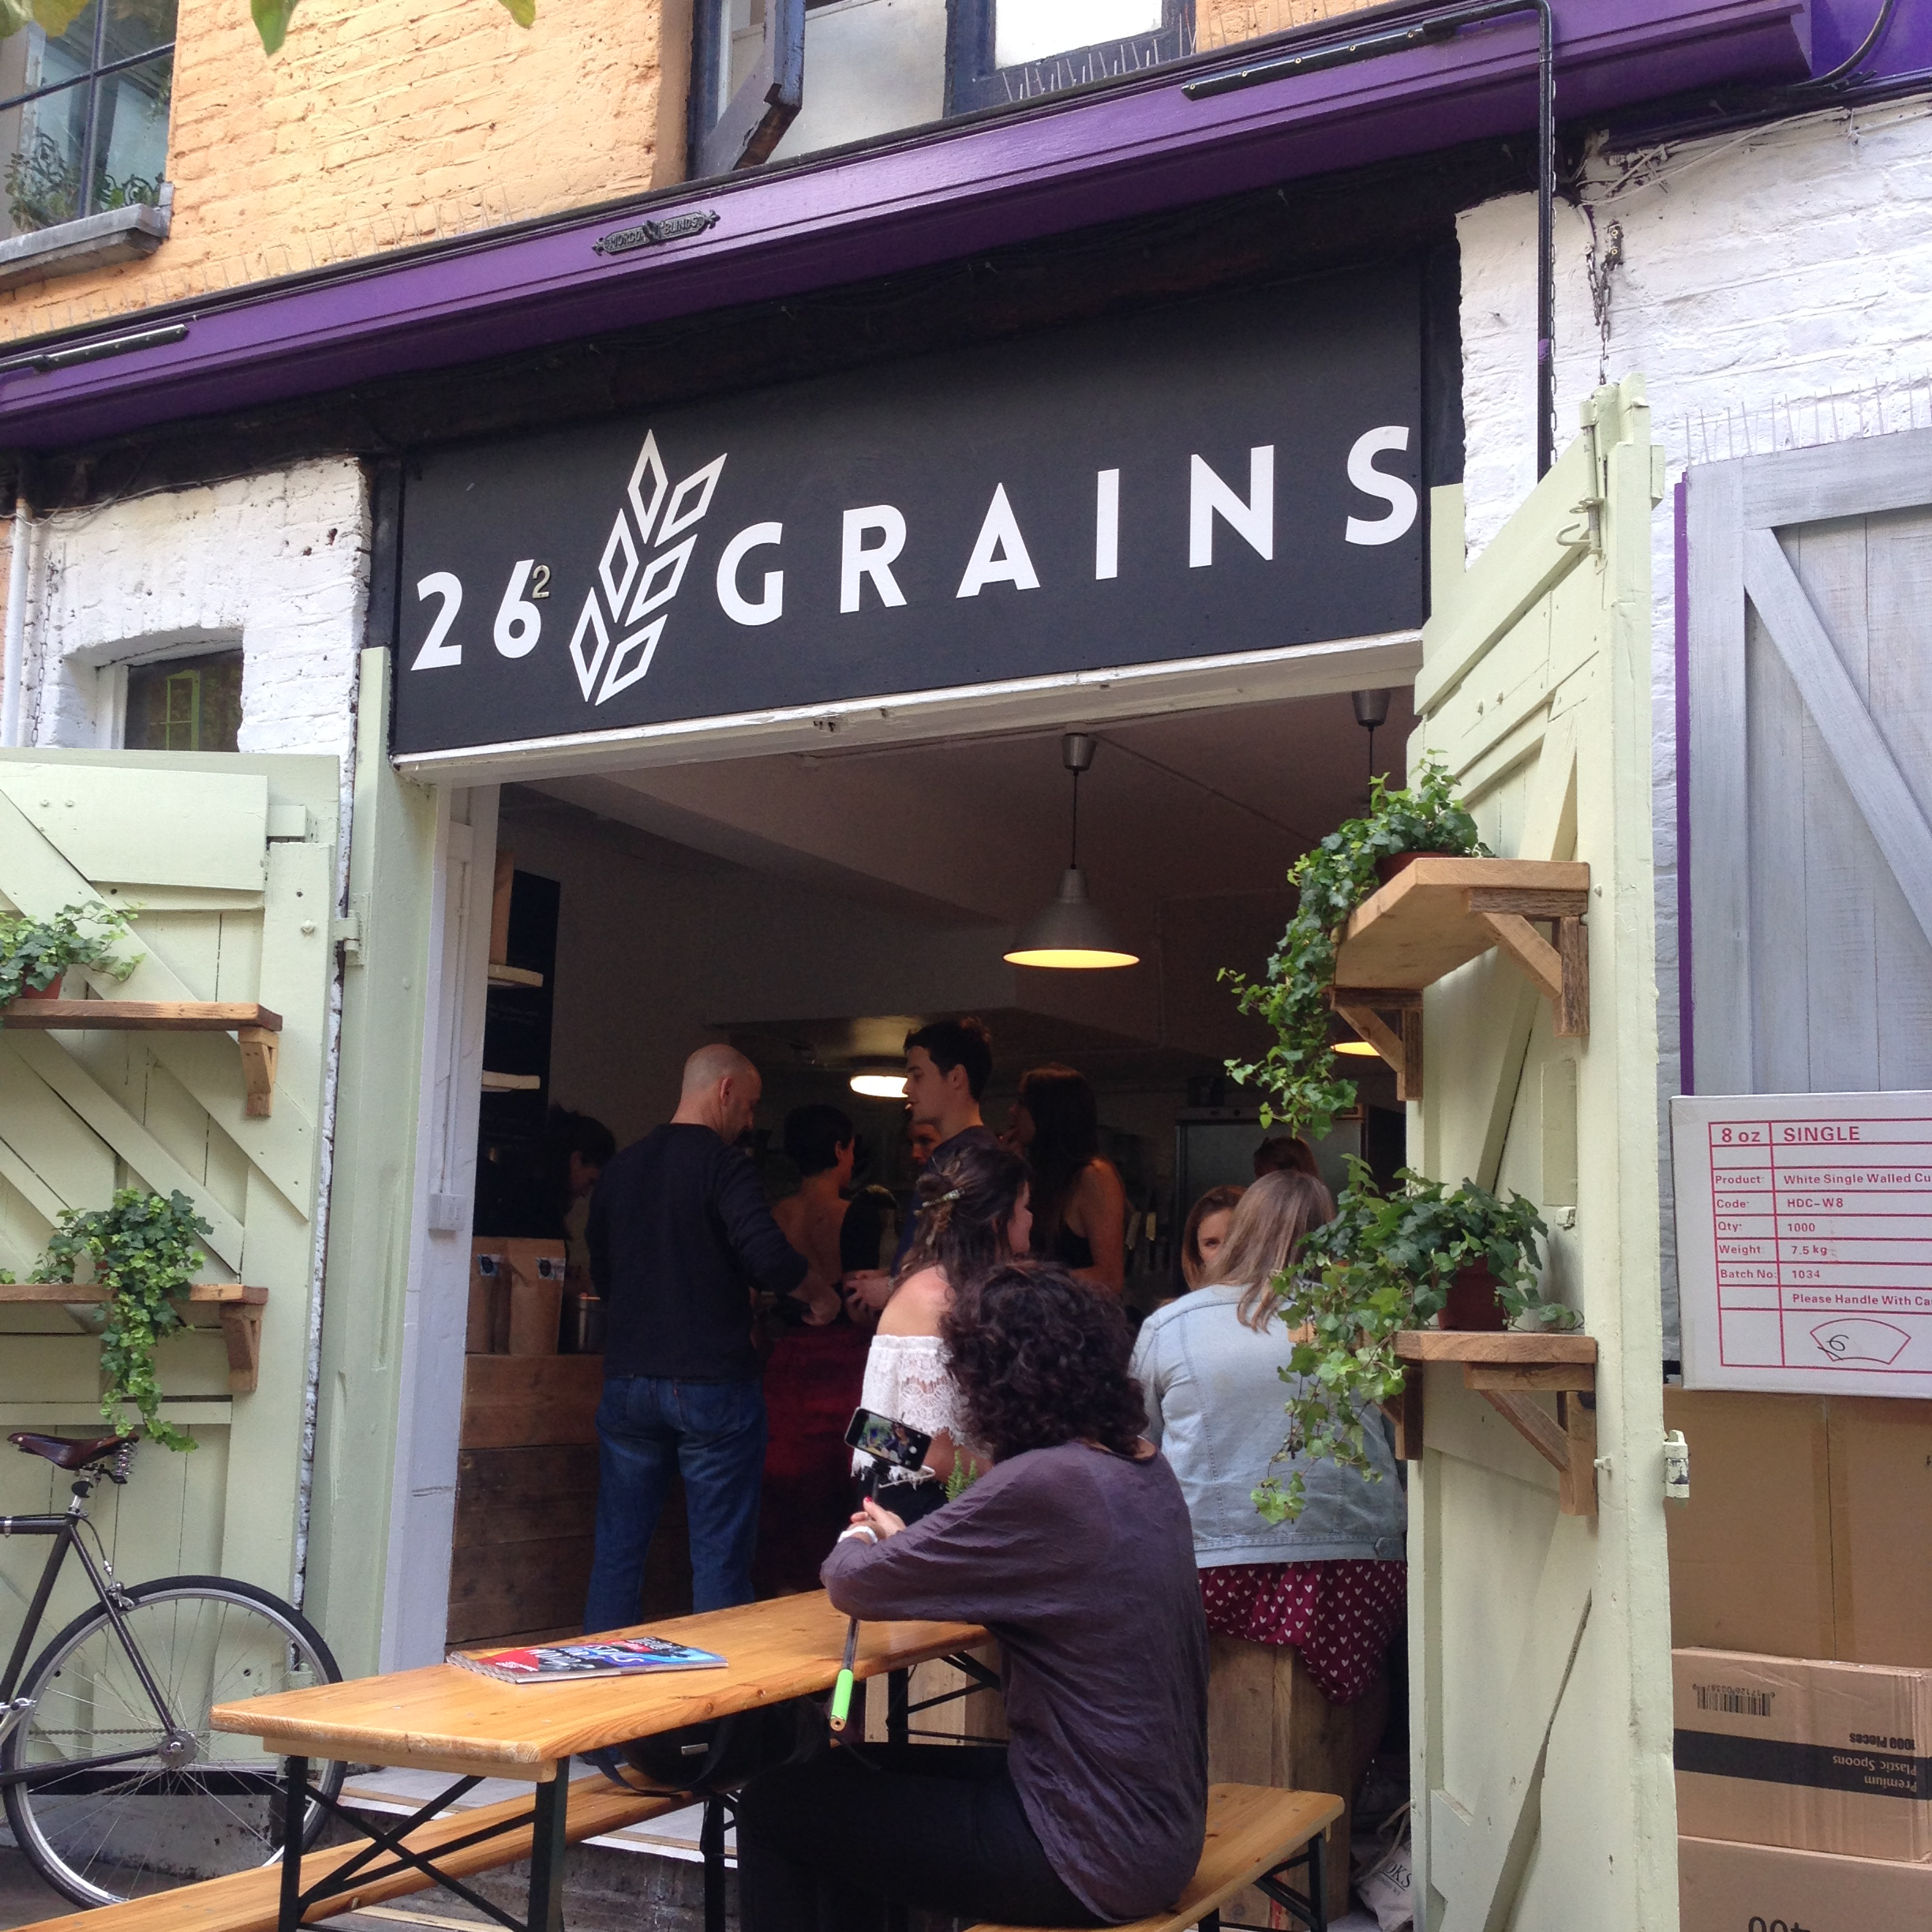 checking out a sweet new crowdfunded cafe in london:  26 grains.